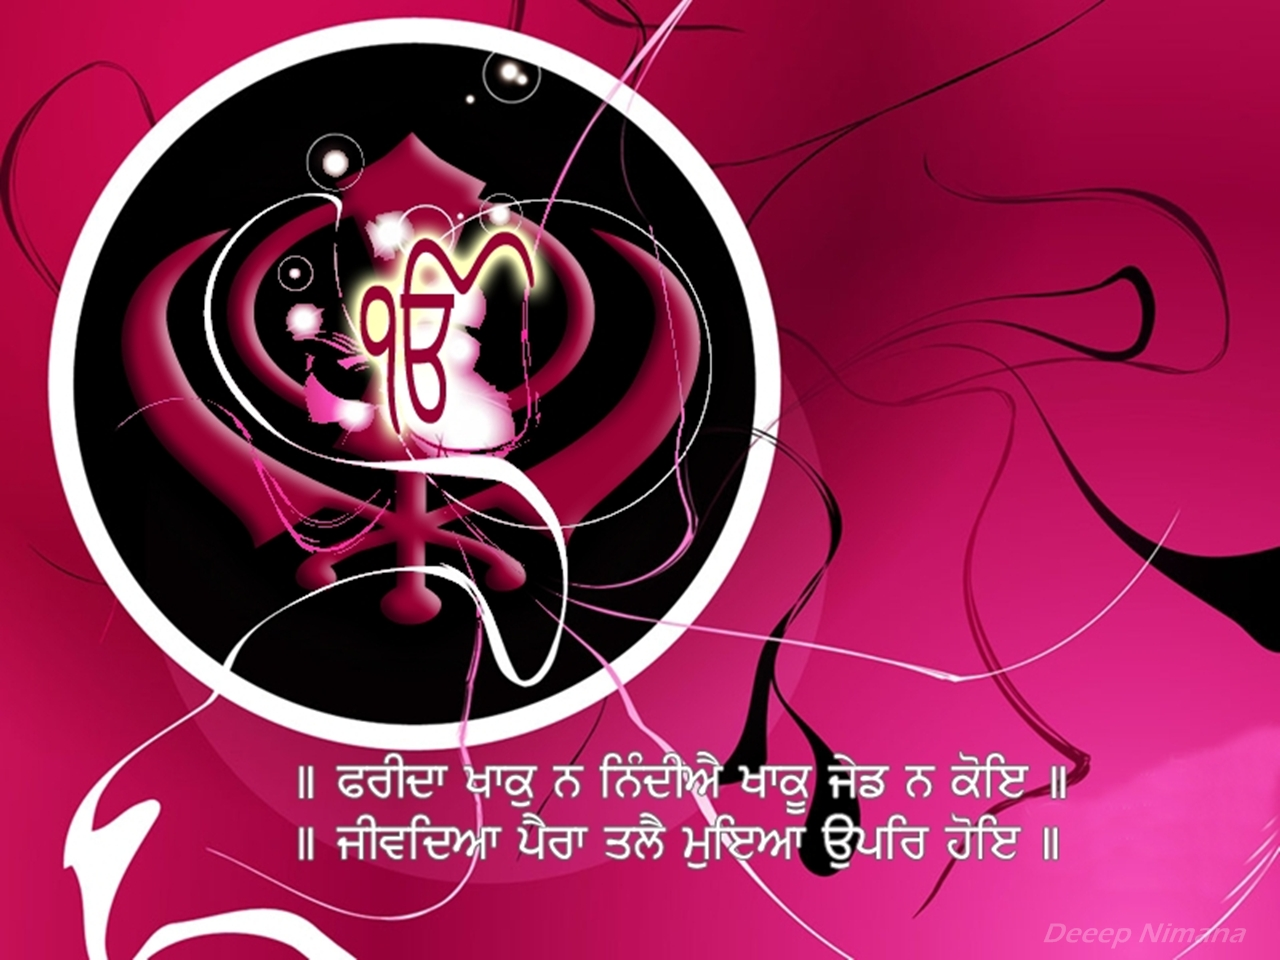 Posted in Sikhism Wallpapers | No Comments ». Tags: Deeep Nimana